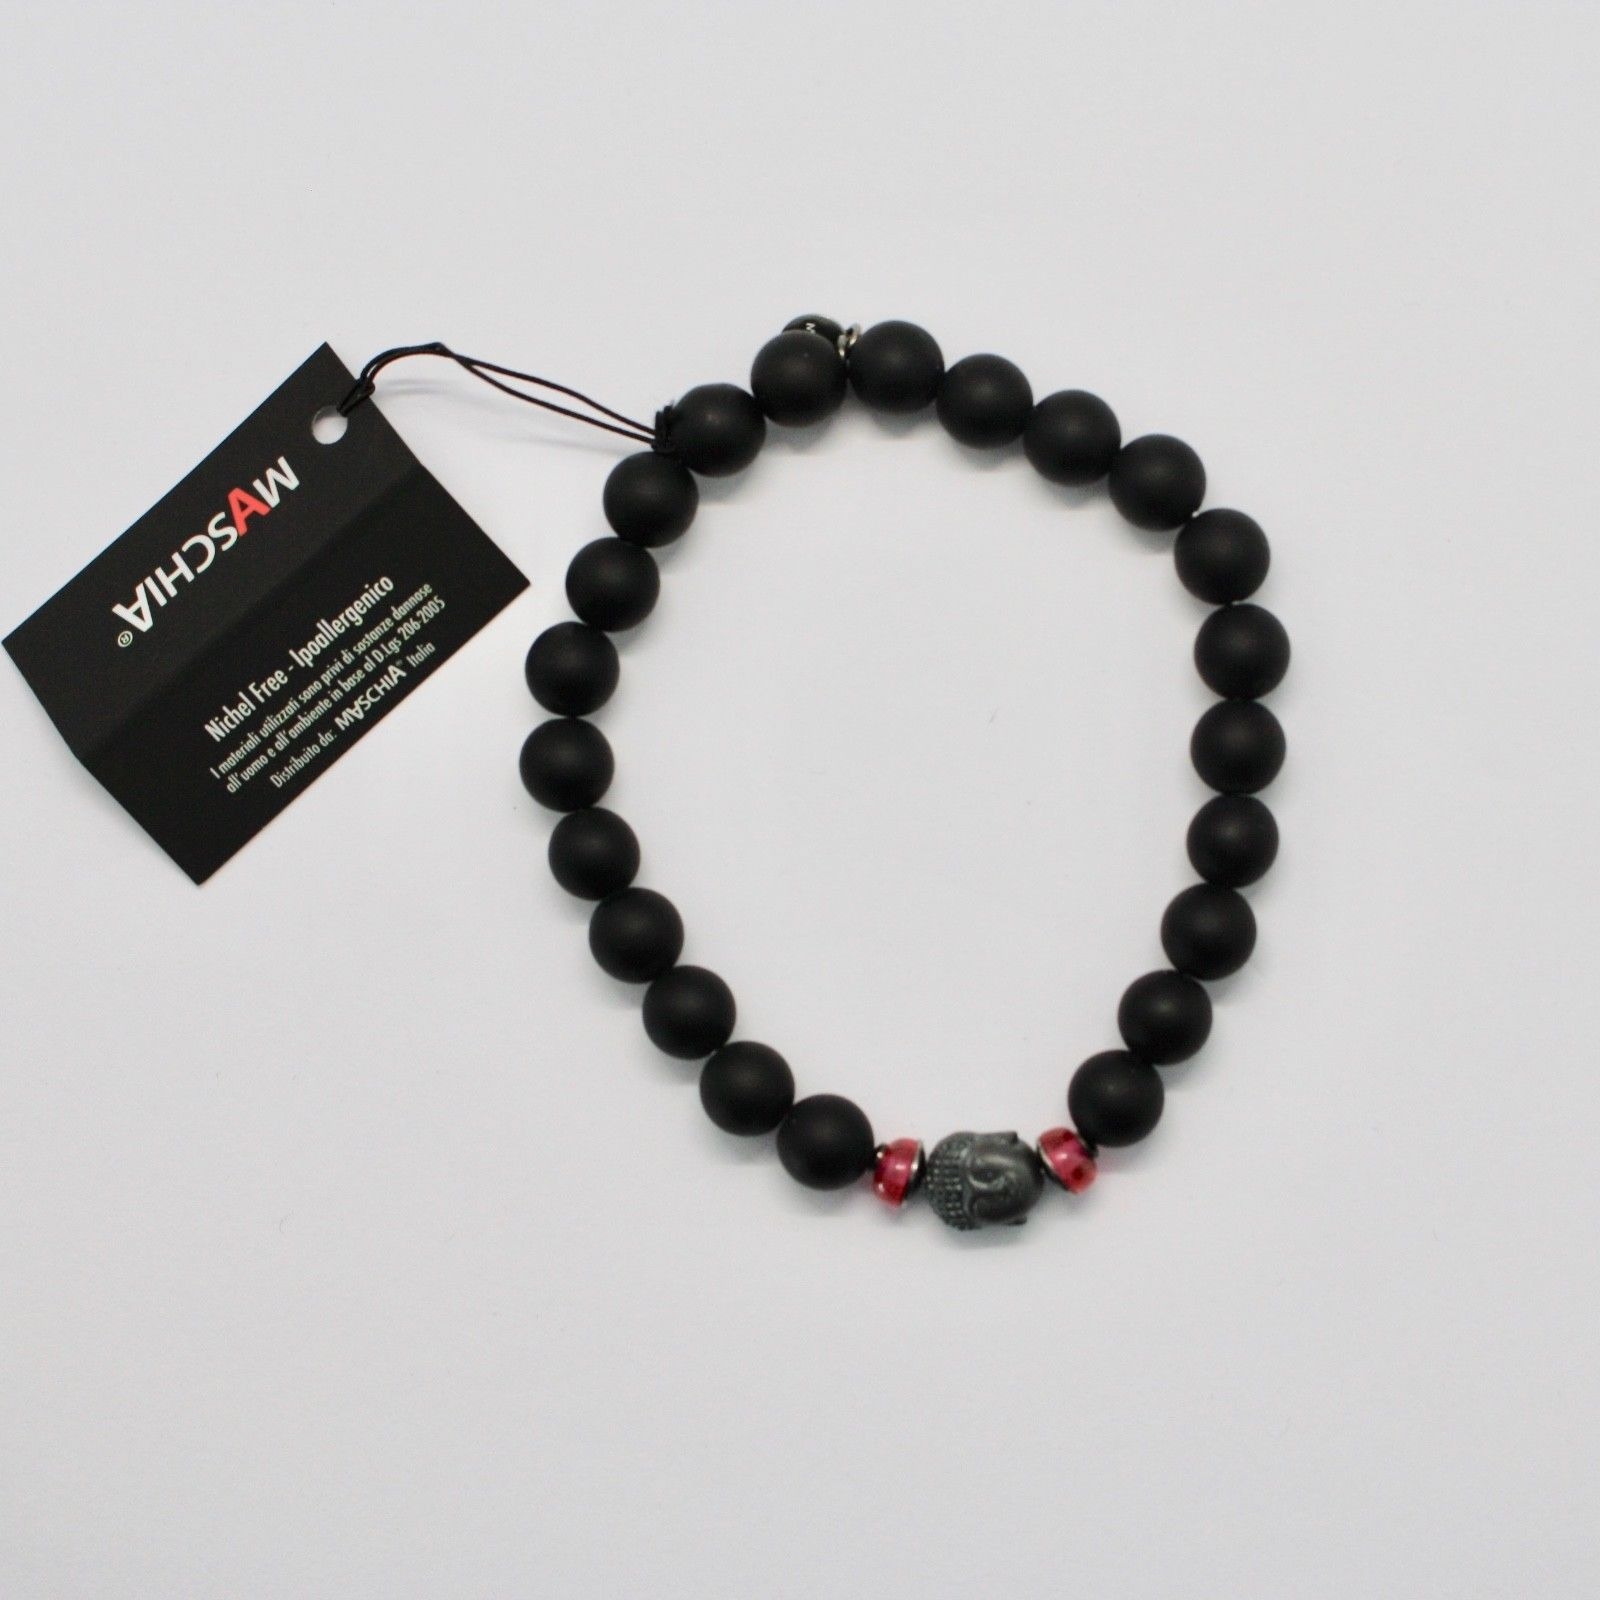 BRACCIALE IN ARGENTO 925 CON EMATITE E ONICE BPR-4 MADE IN ITALY BY MASCHIA image 3